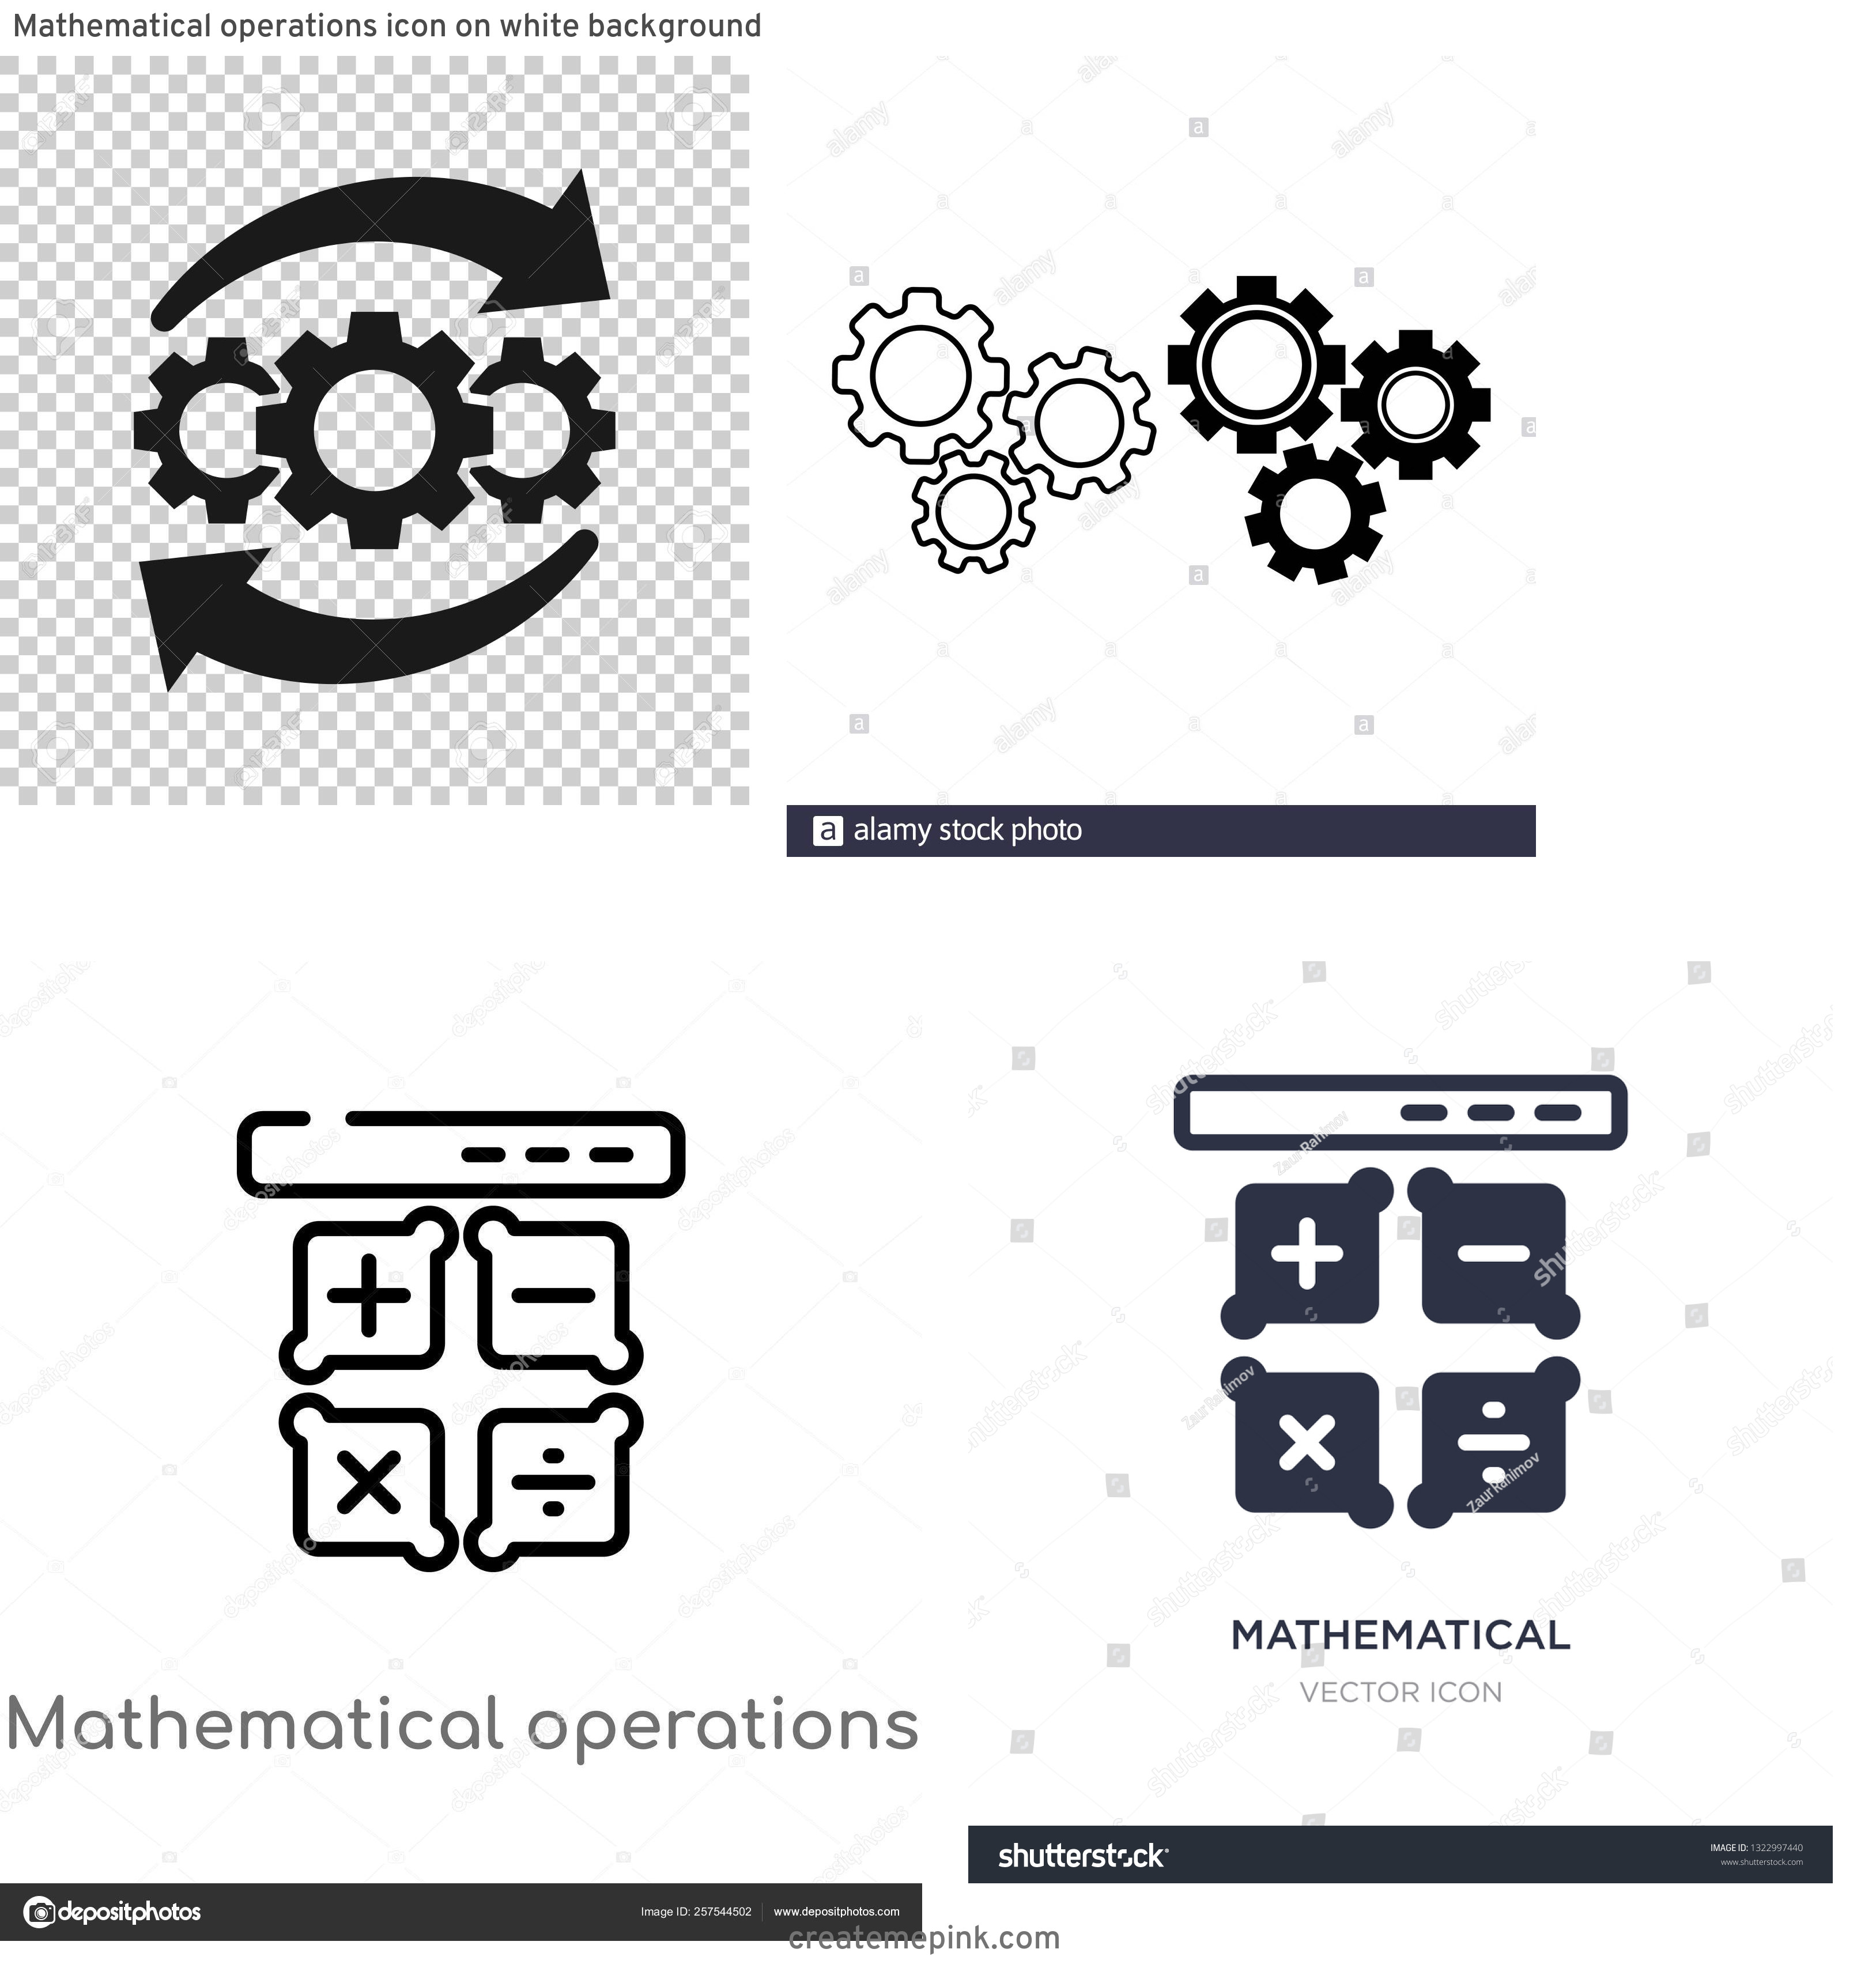 Operations Icon Vector: Mathematical Operations Icon On White Background